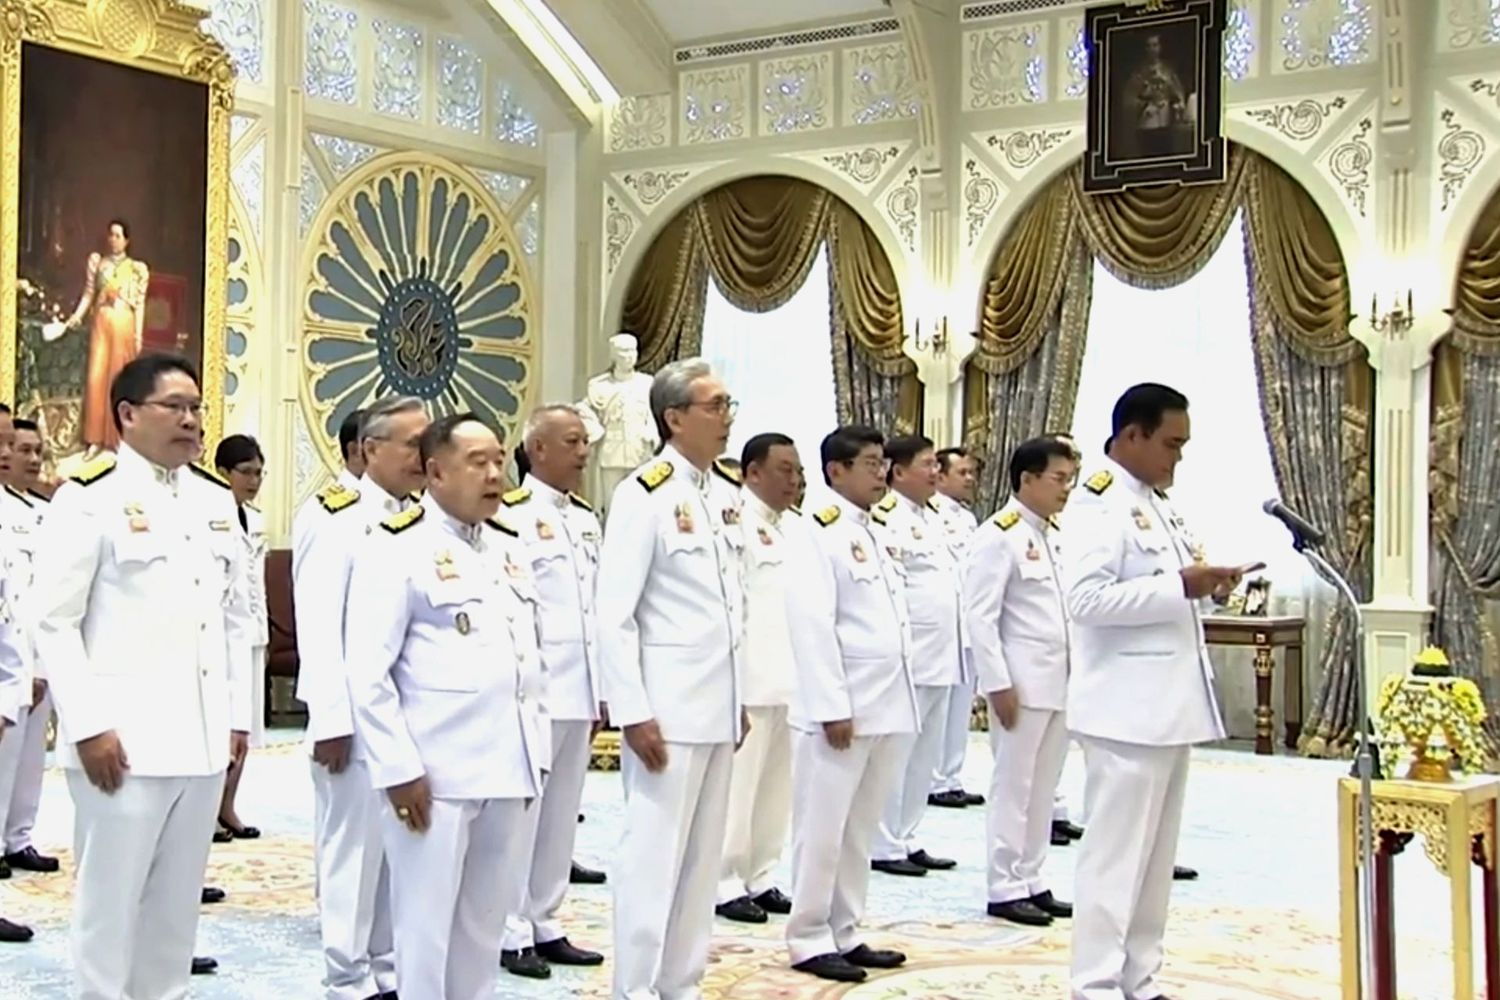 Prime Minister Prayut Chan-o-cha leads cabinet ministers to swear an oasth before Their Majesties at Dusit Throne on July 16. (Pool TV photo)